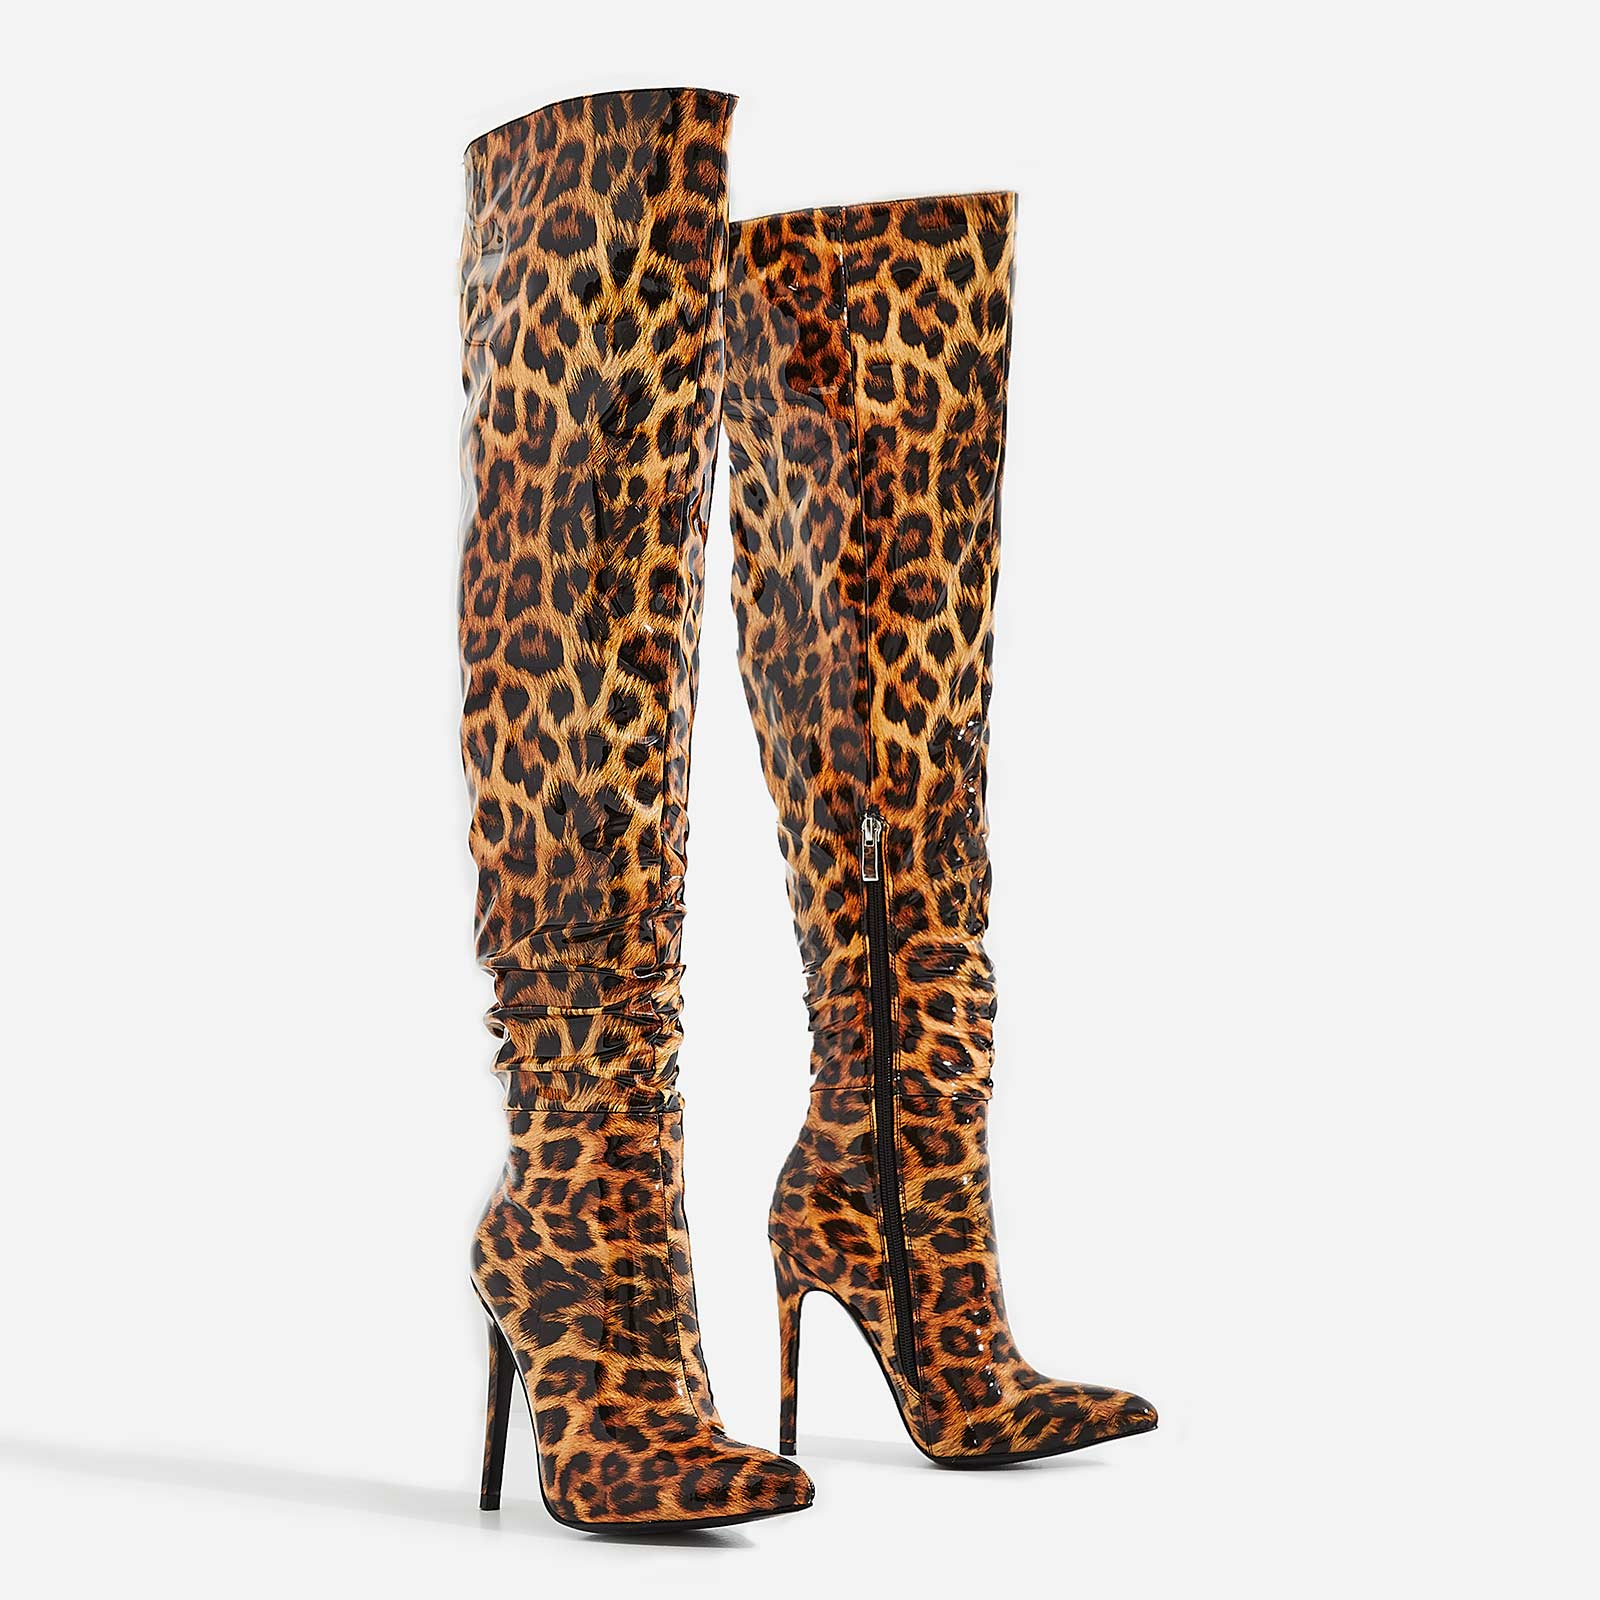 Lara Thigh High Long Boots In Tan Leopard Print Patent